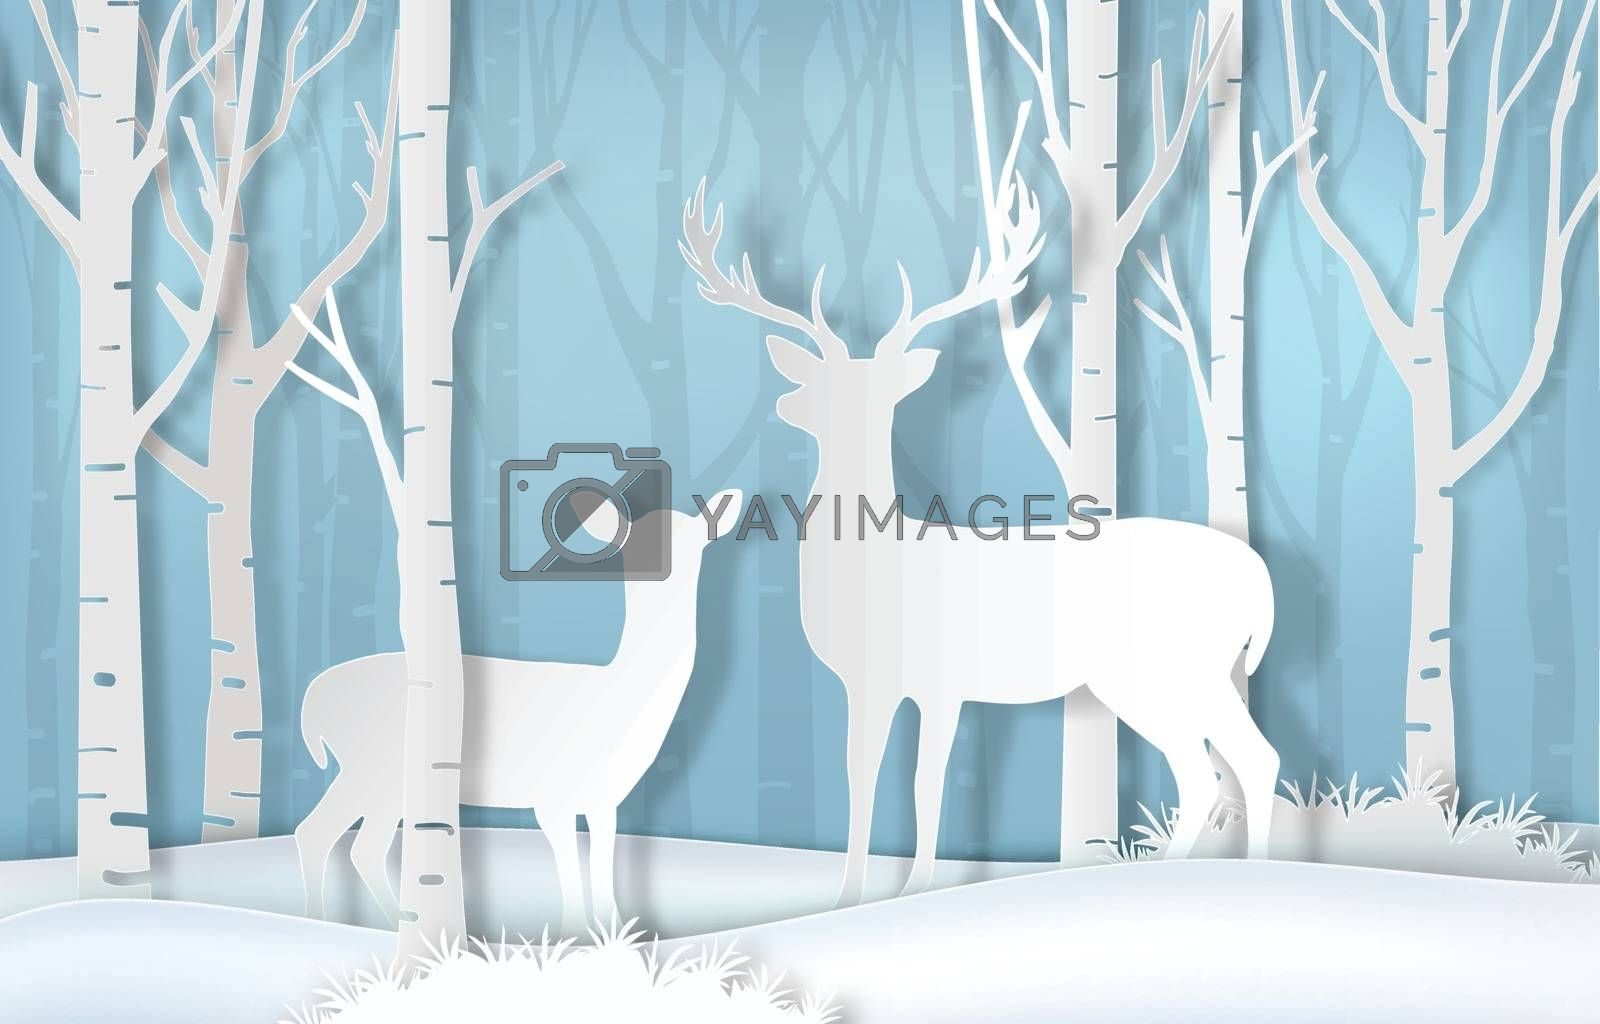 Deer standing in forest. Nature background  paper art style by Kheat